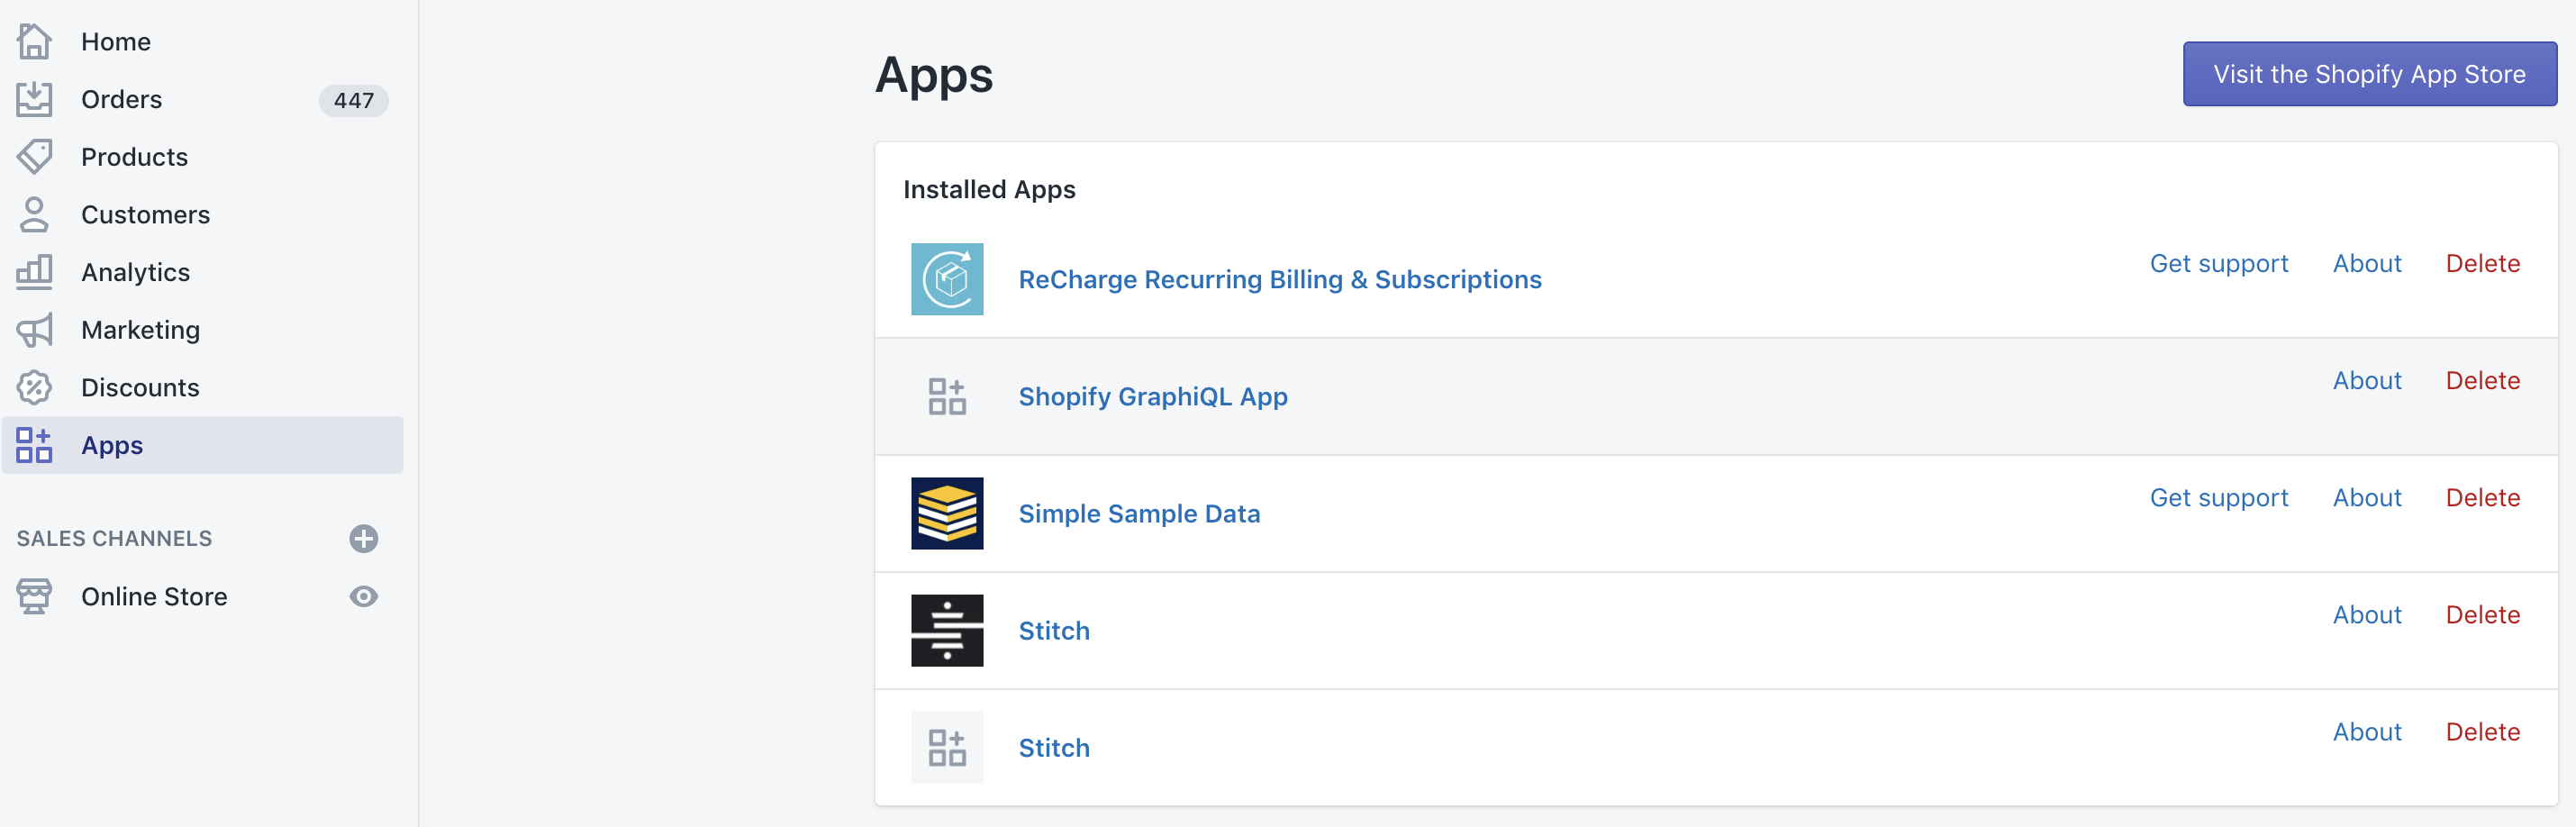 Shopify Apps page.